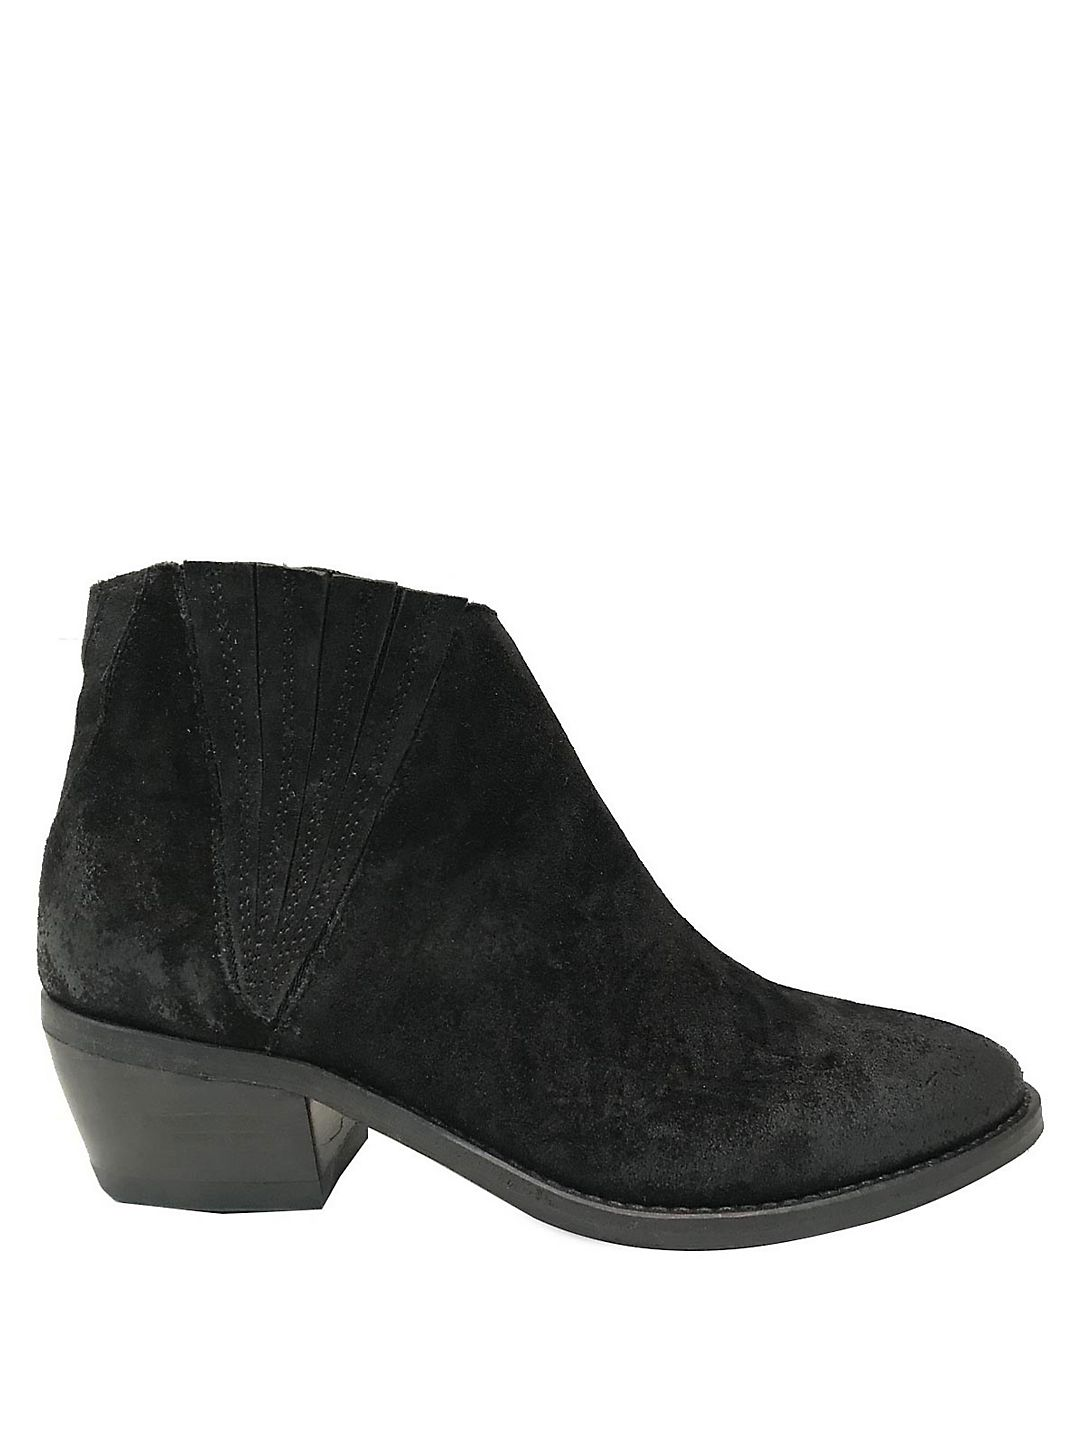 Cupid Suede Booties